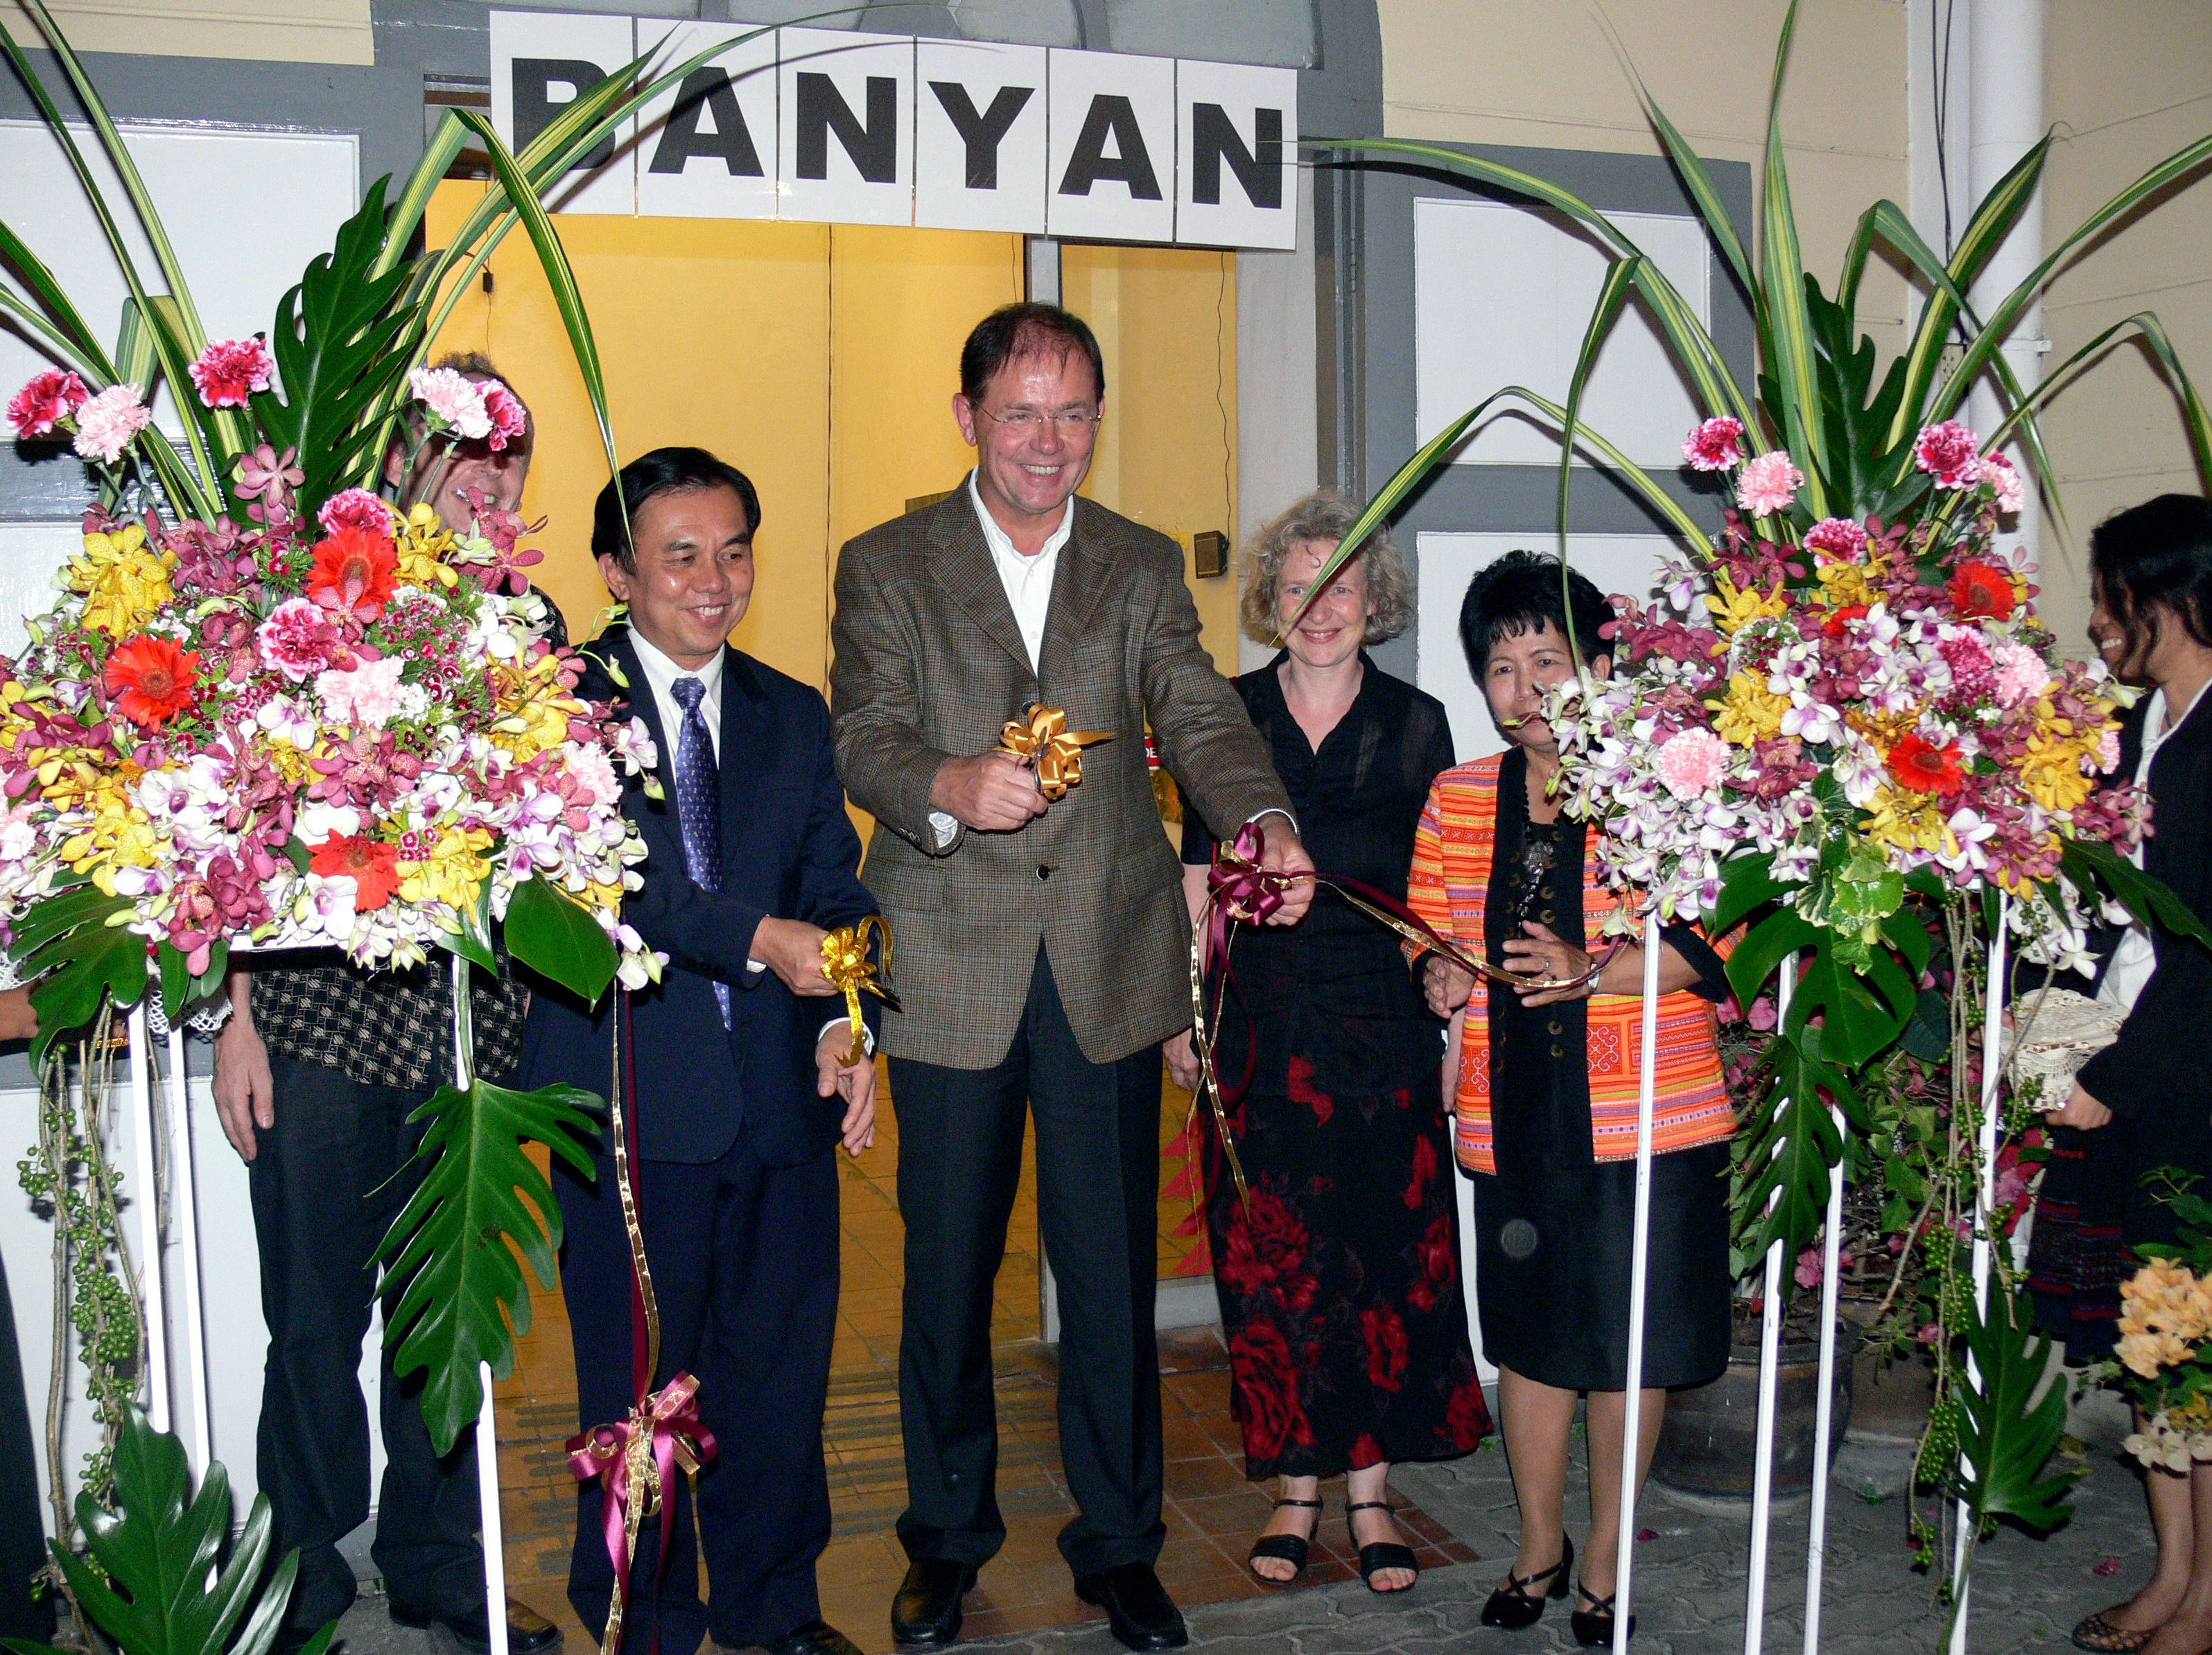 The Banyan Tree - Vernissage/opening National Gallery Bangkok 2009